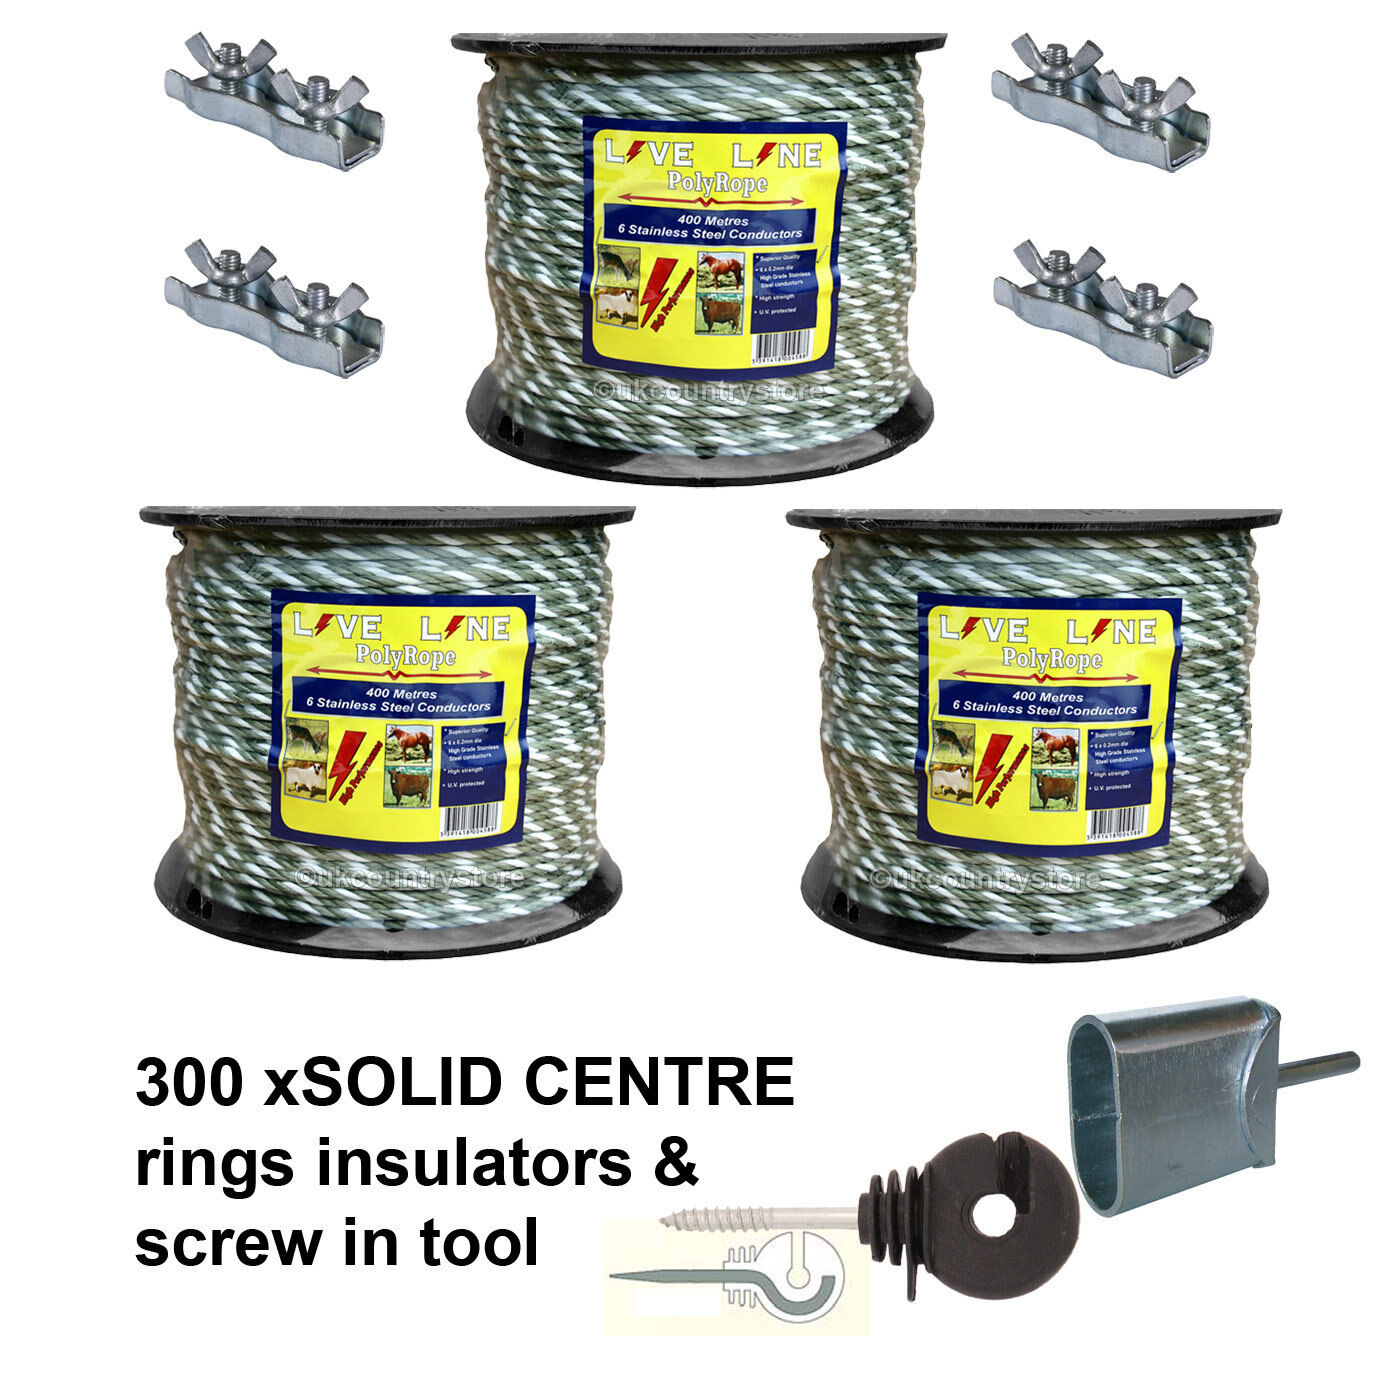 3 x 400m Green   White Electric Fencing Rope & 300 Rings with Tool & Connectors